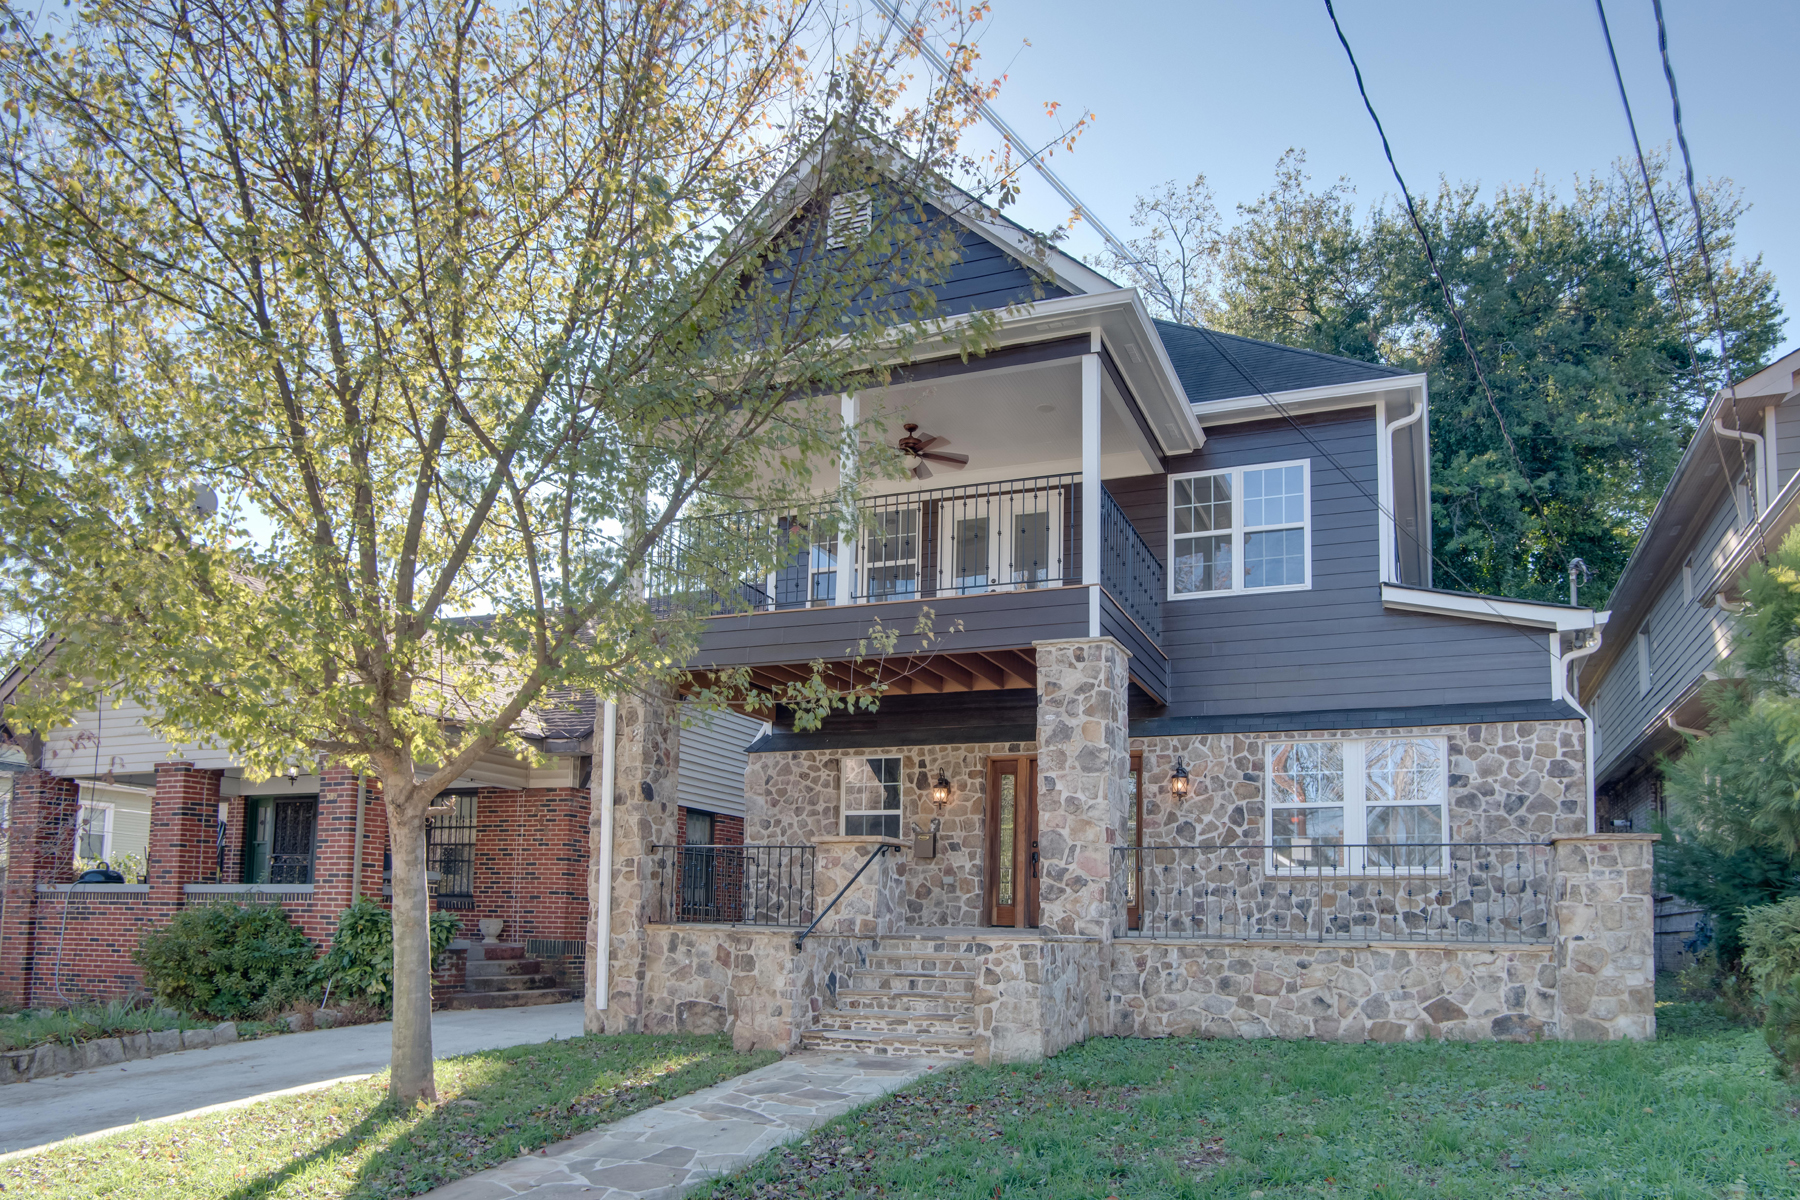 Spacious Five Bedroom Home In Hot Old Fourth Ward 505 Angier Avenue NE Atlanta, Georgia 30308 United States